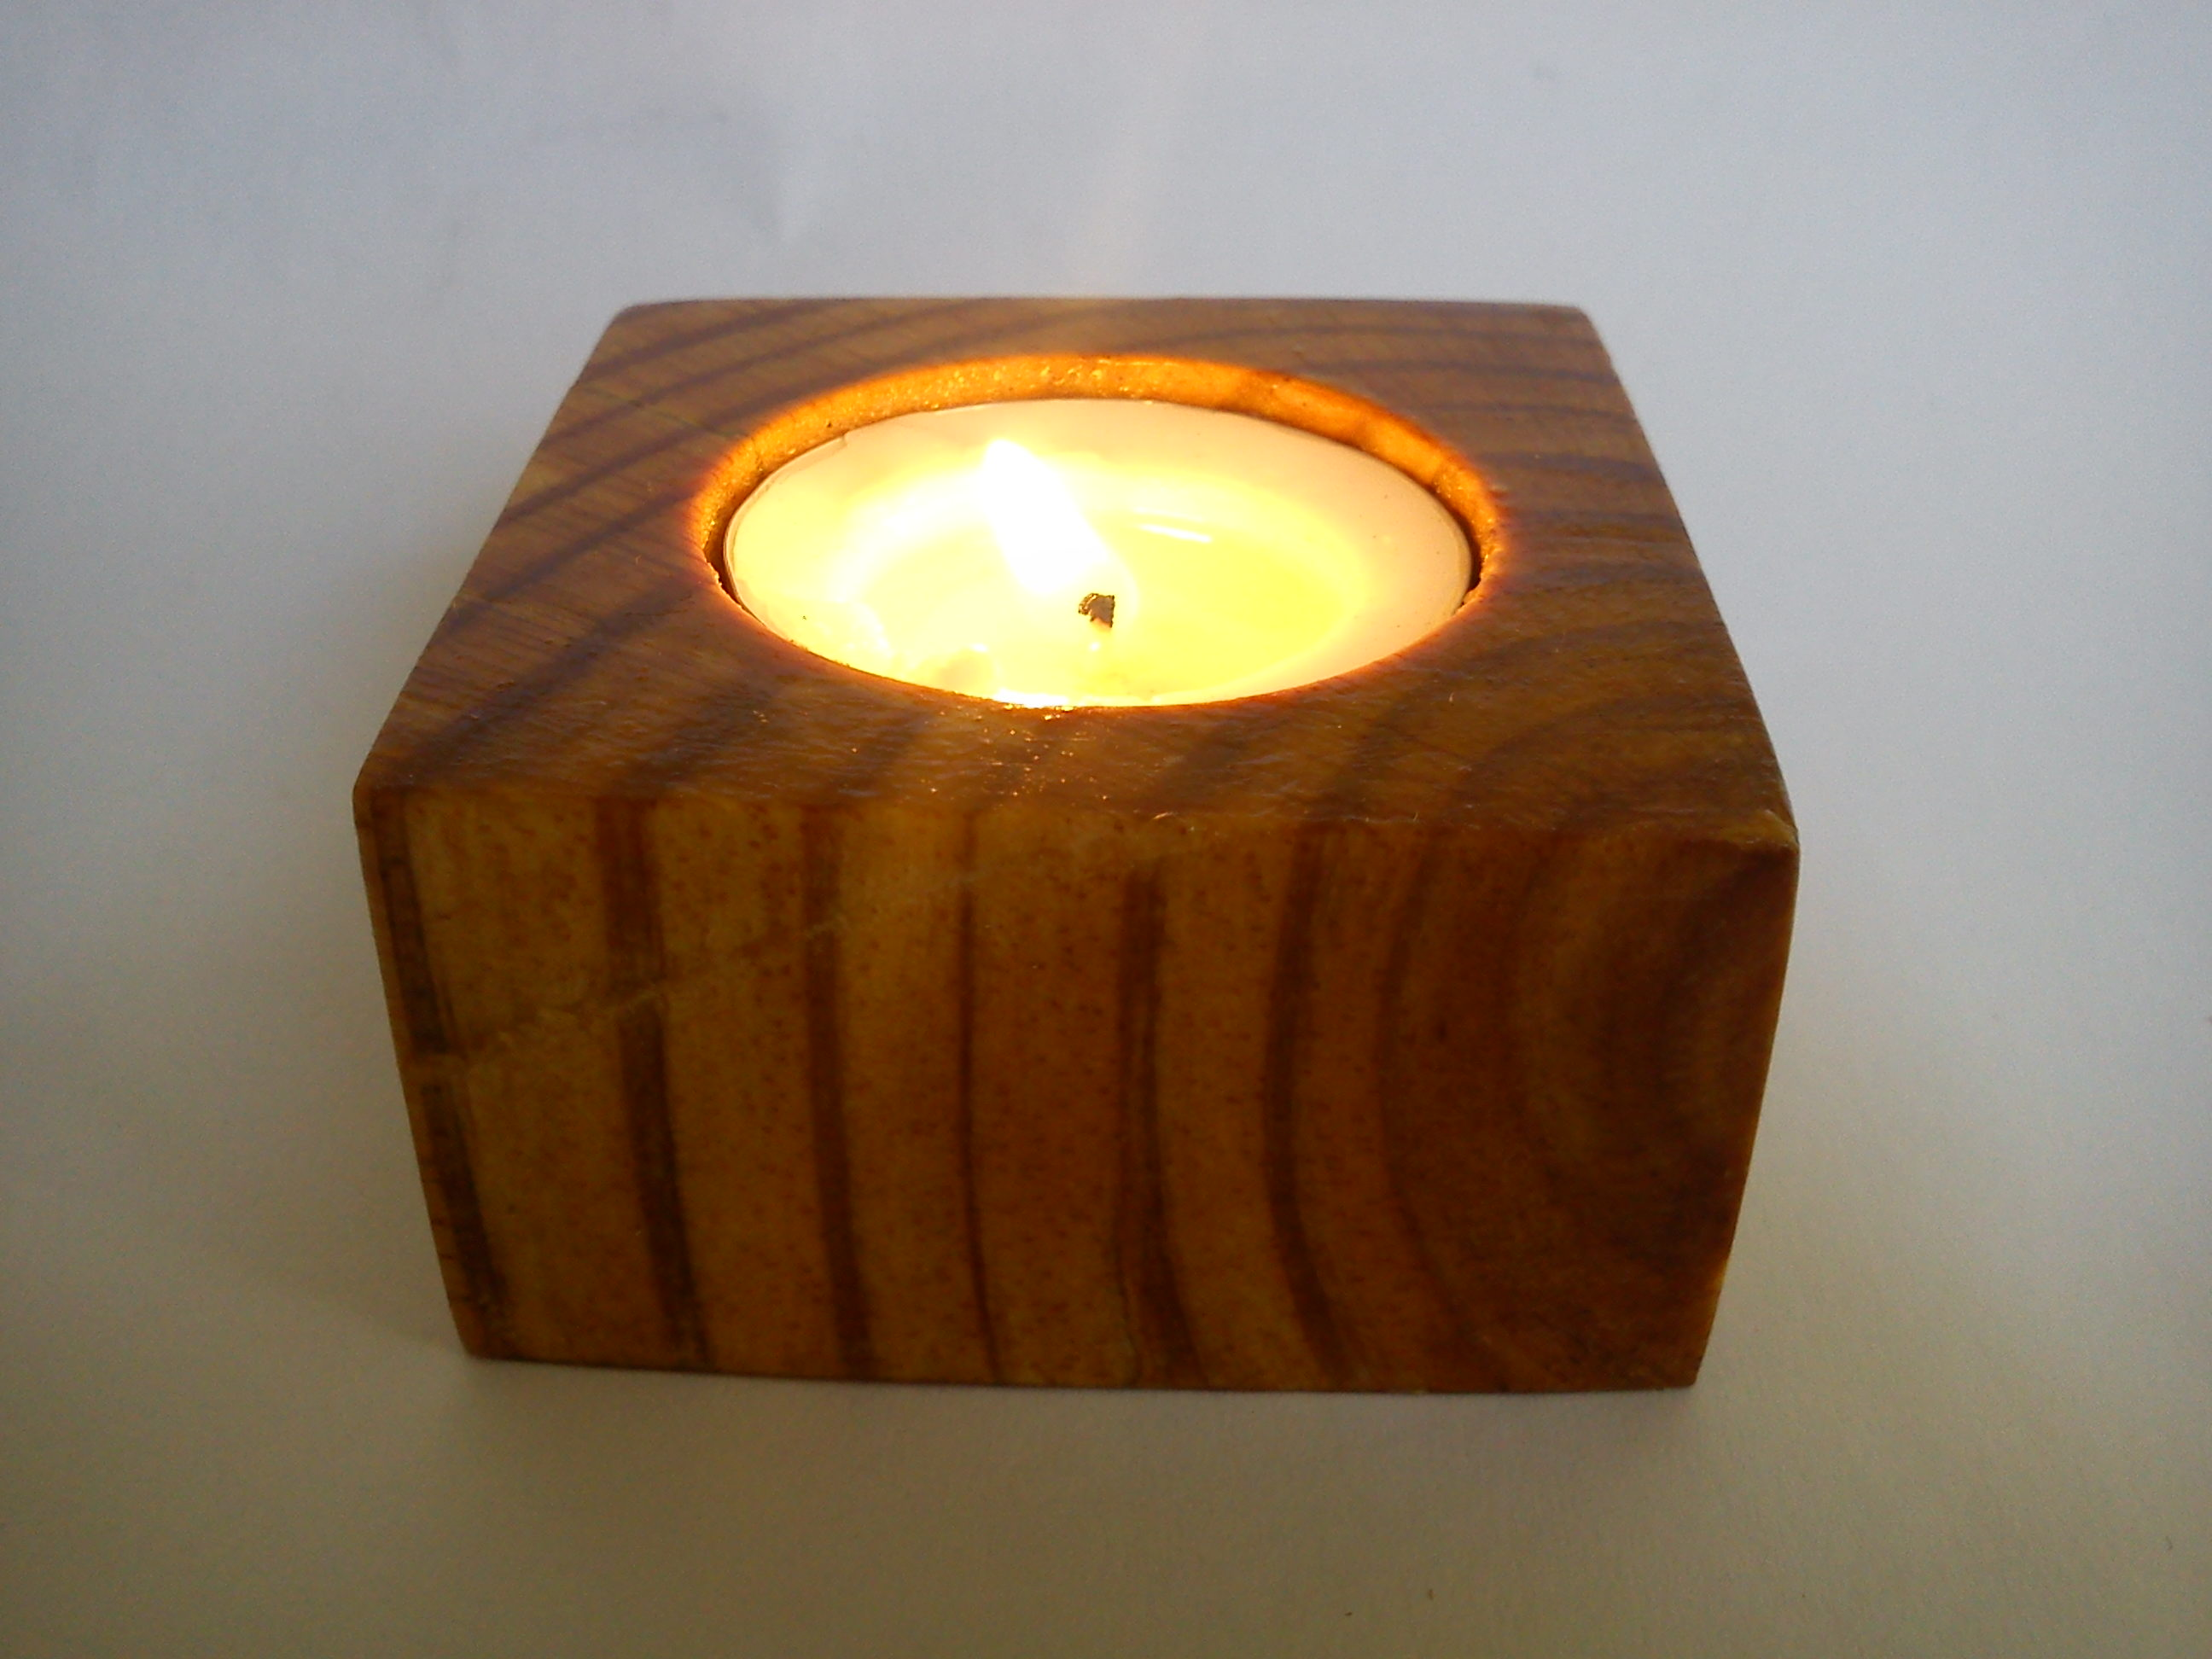 Tealight Lamp Greekproducts24 Tea Light Candle Holder From Pinewood